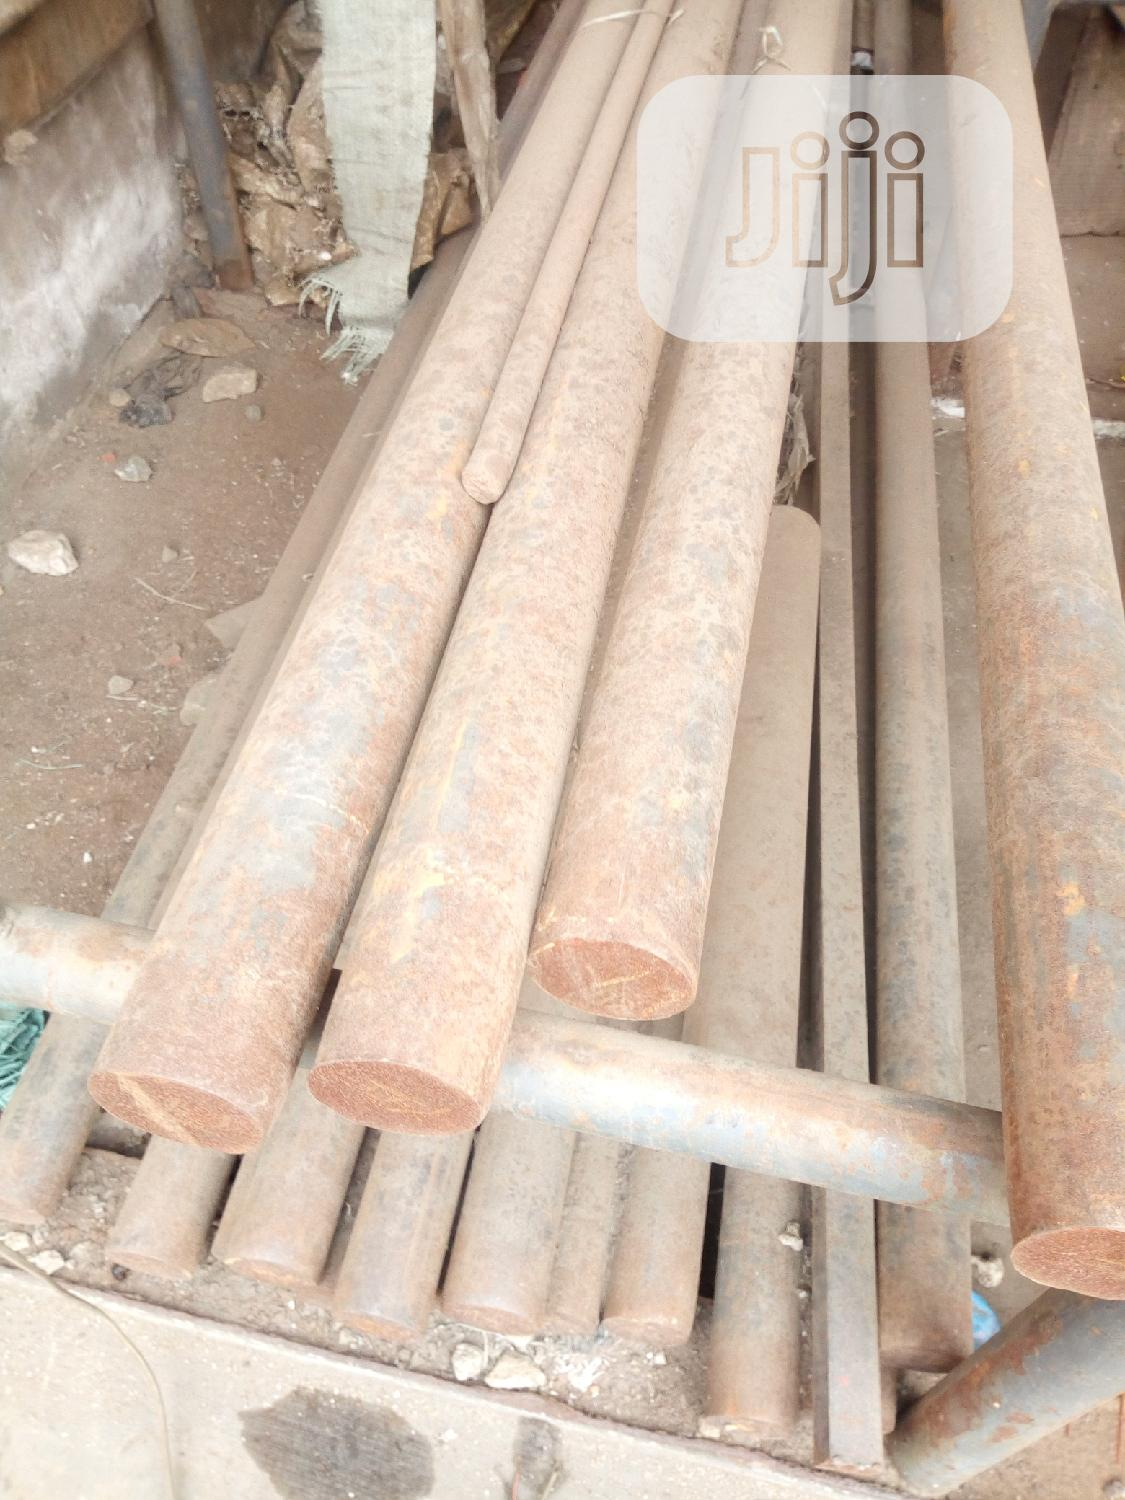 Plane Mil Steel Rod (Plane Rod) | Building Materials for sale in Orile, Lagos State, Nigeria